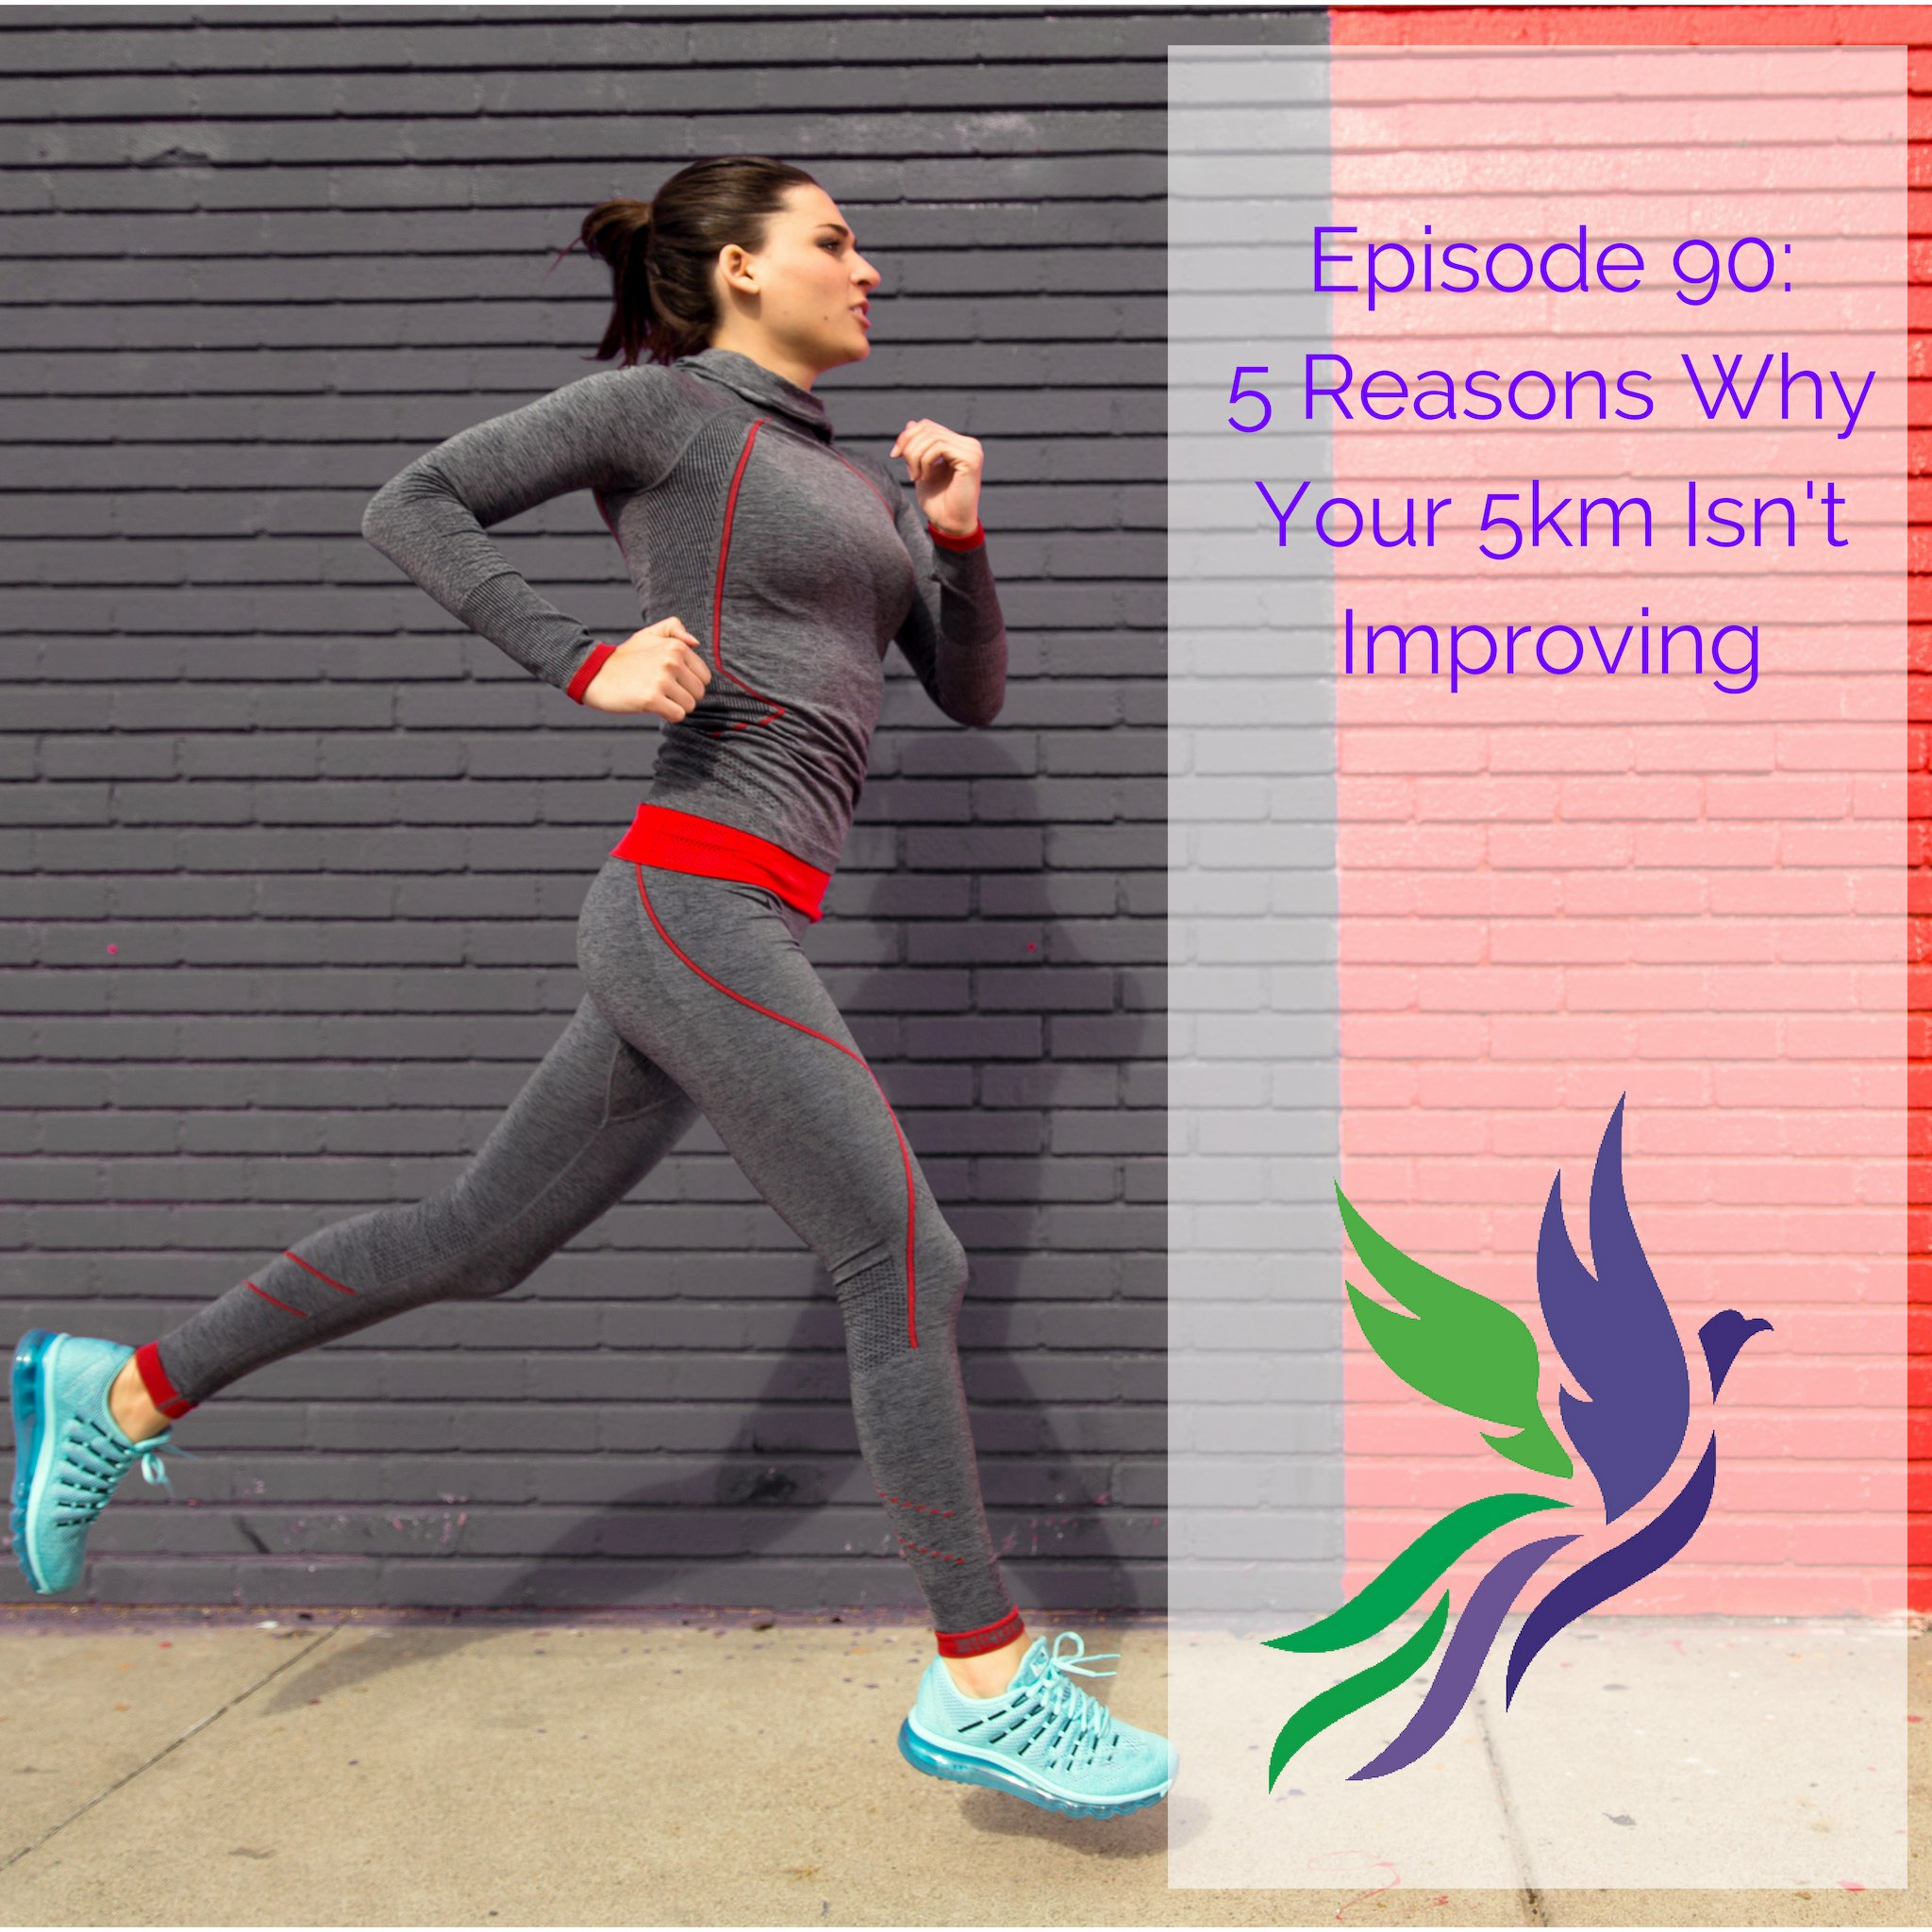 #90 Five Reasons Why Your 5km Isn't Improving